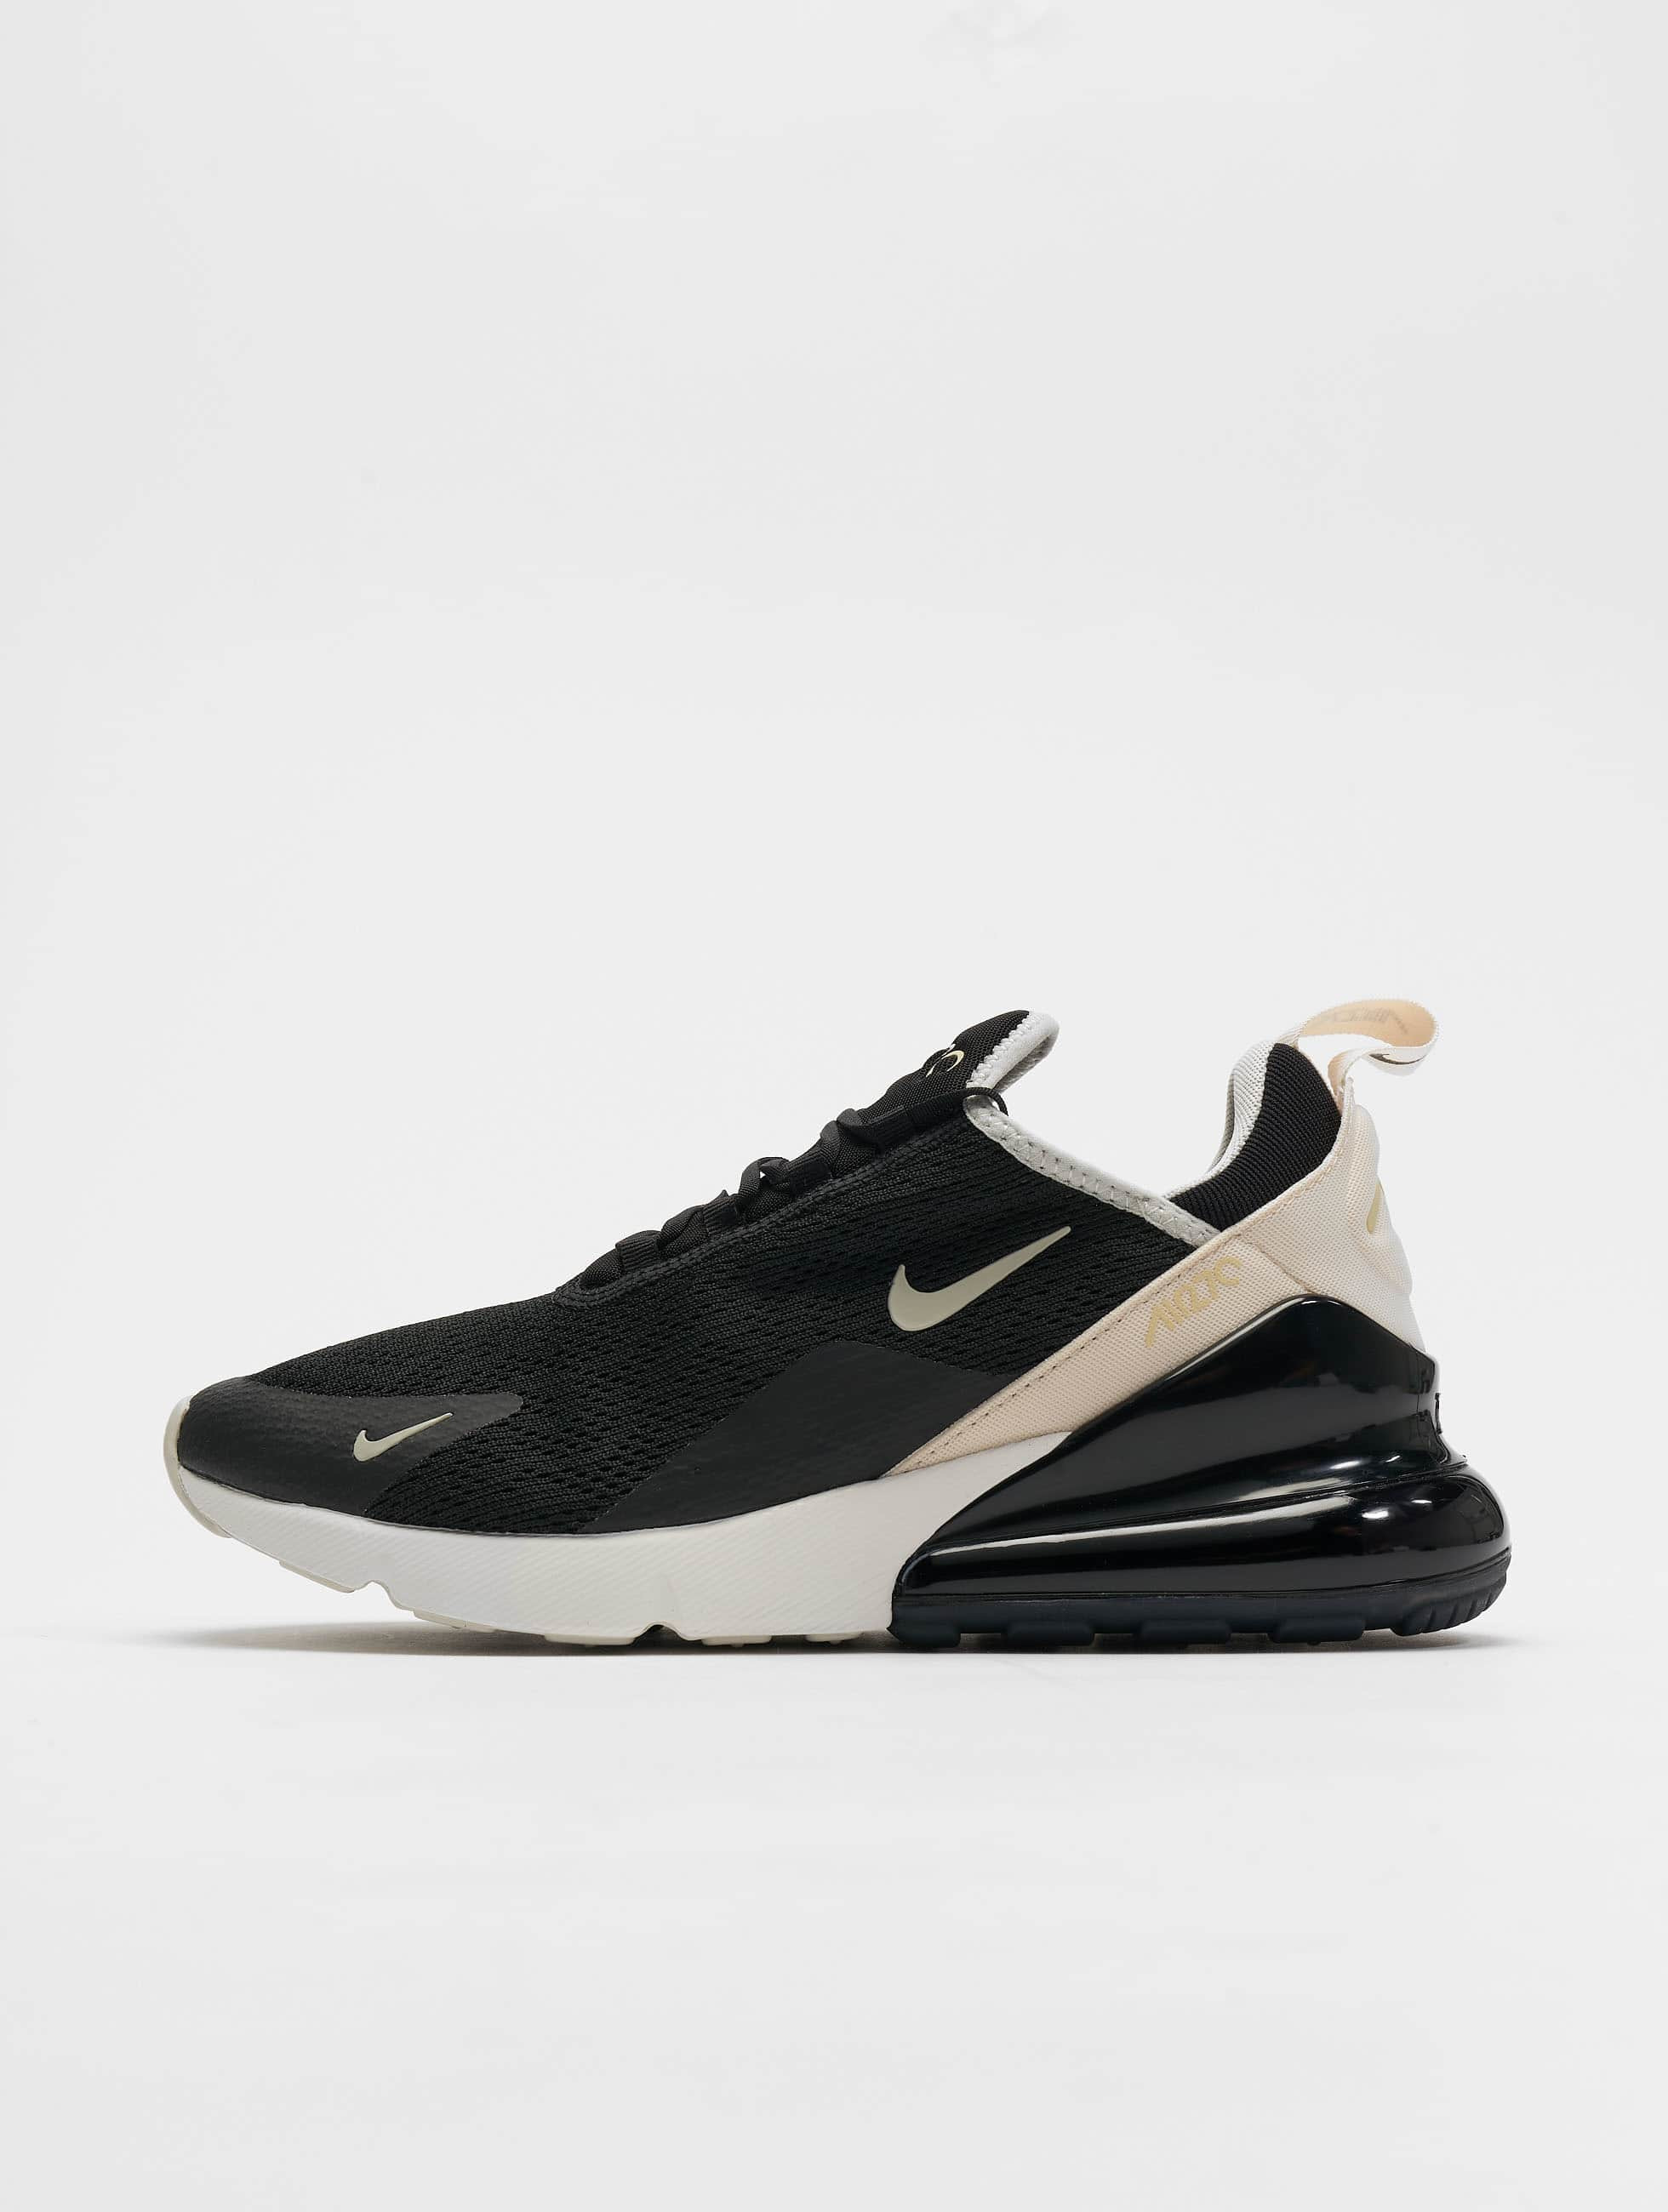 2ca9195251c Nike Sko / Sneakers W Air Max 270 i sort 654107